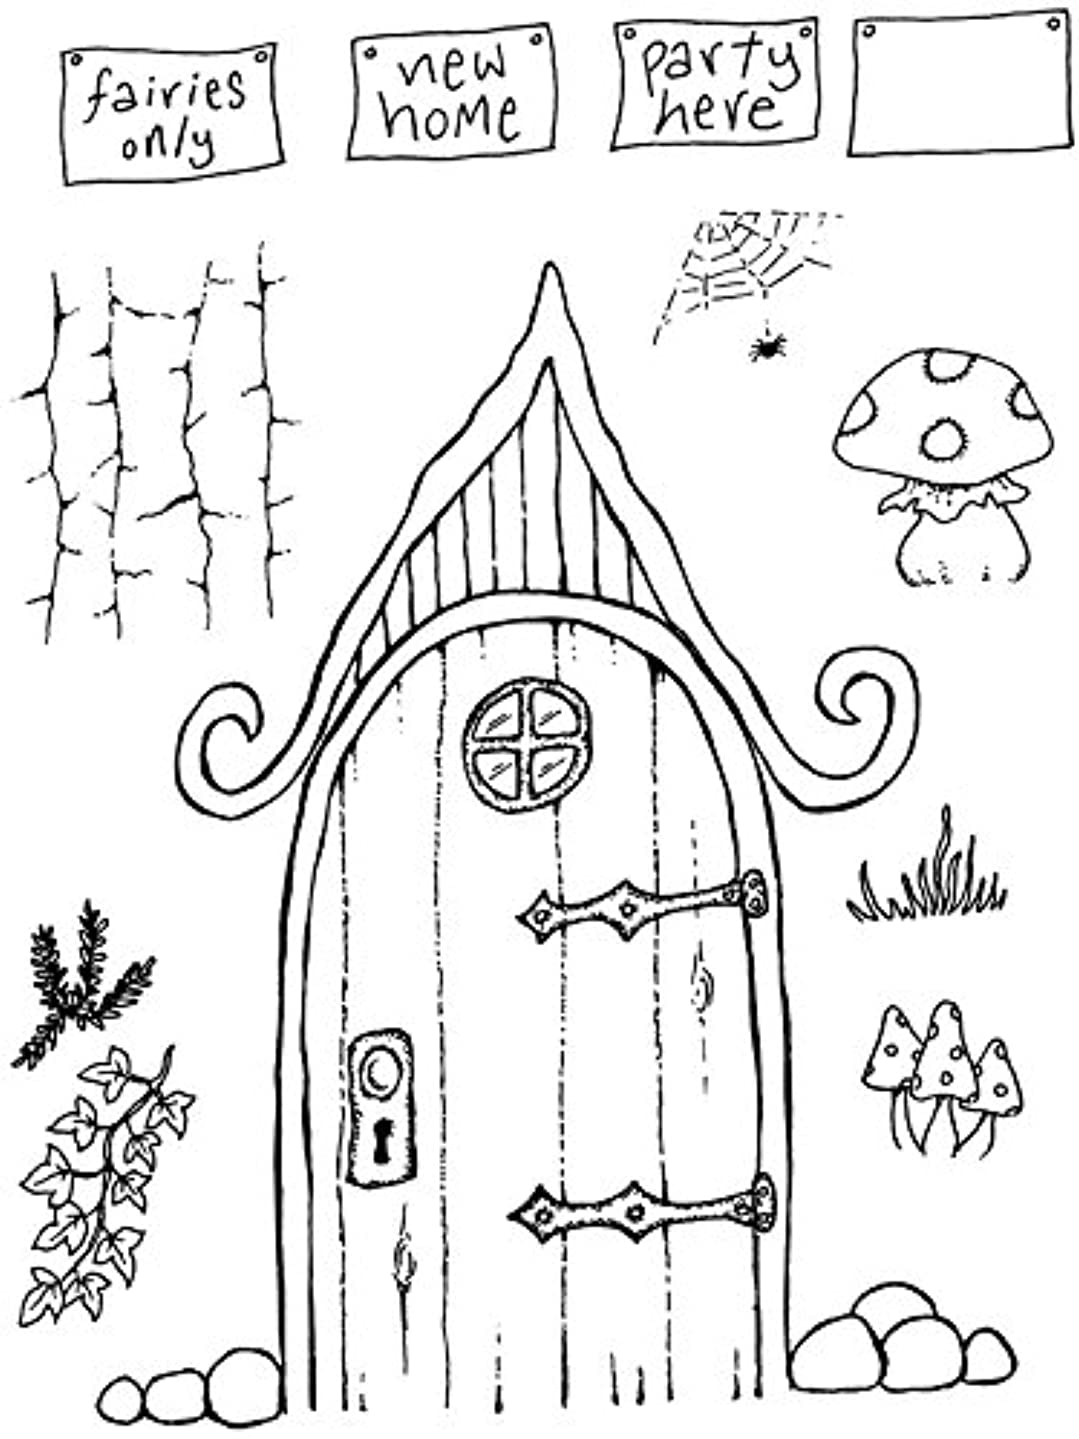 Sweet Dixie Curly Fairy Door Clear Stamp by Sweet Dixie